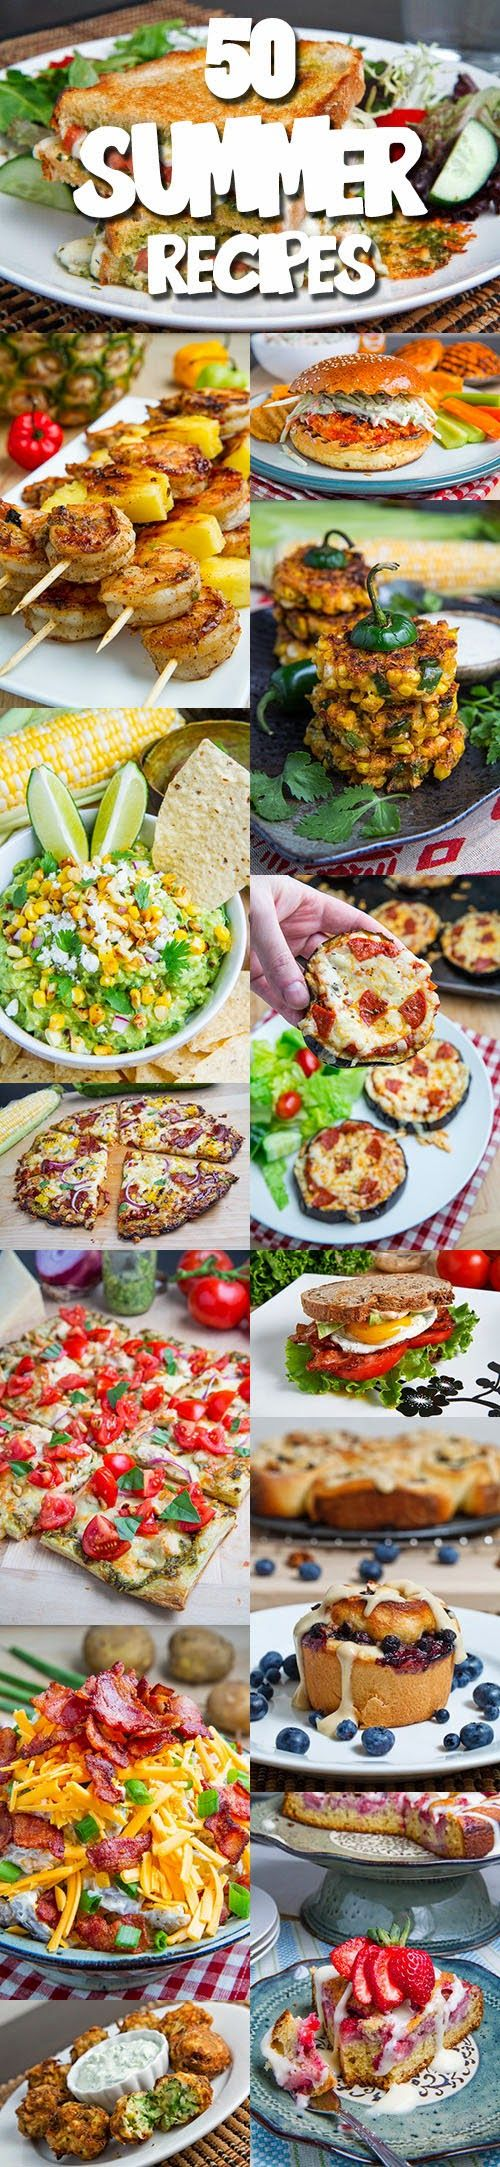 50 Summer Recipes, these look great, i've tried some of them and they really are amazing!